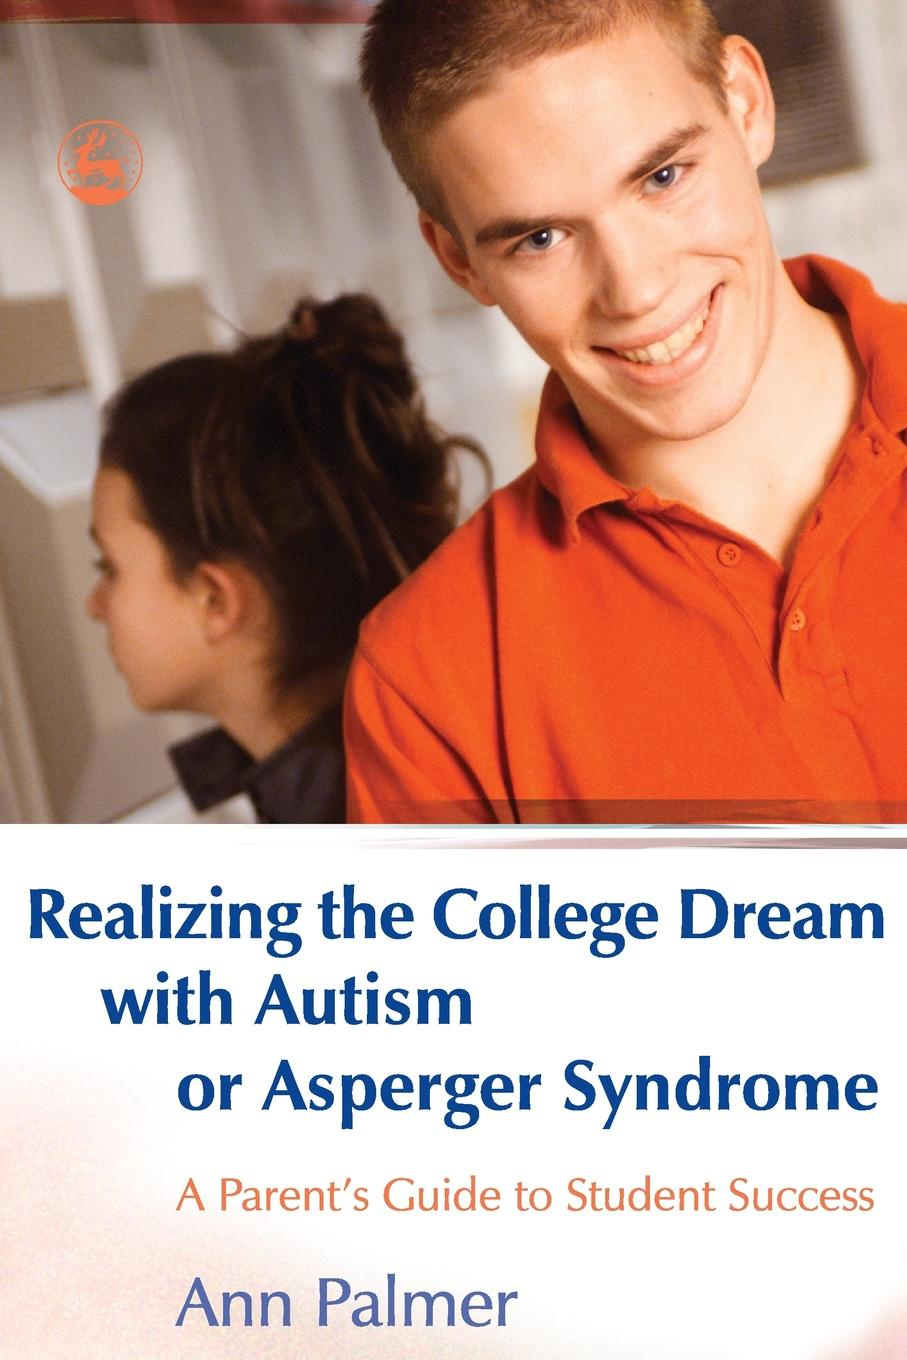 Ann Palmer Realizing the College Dream with Autism or Asperger Syndrome. A Parents Guide to Student Success